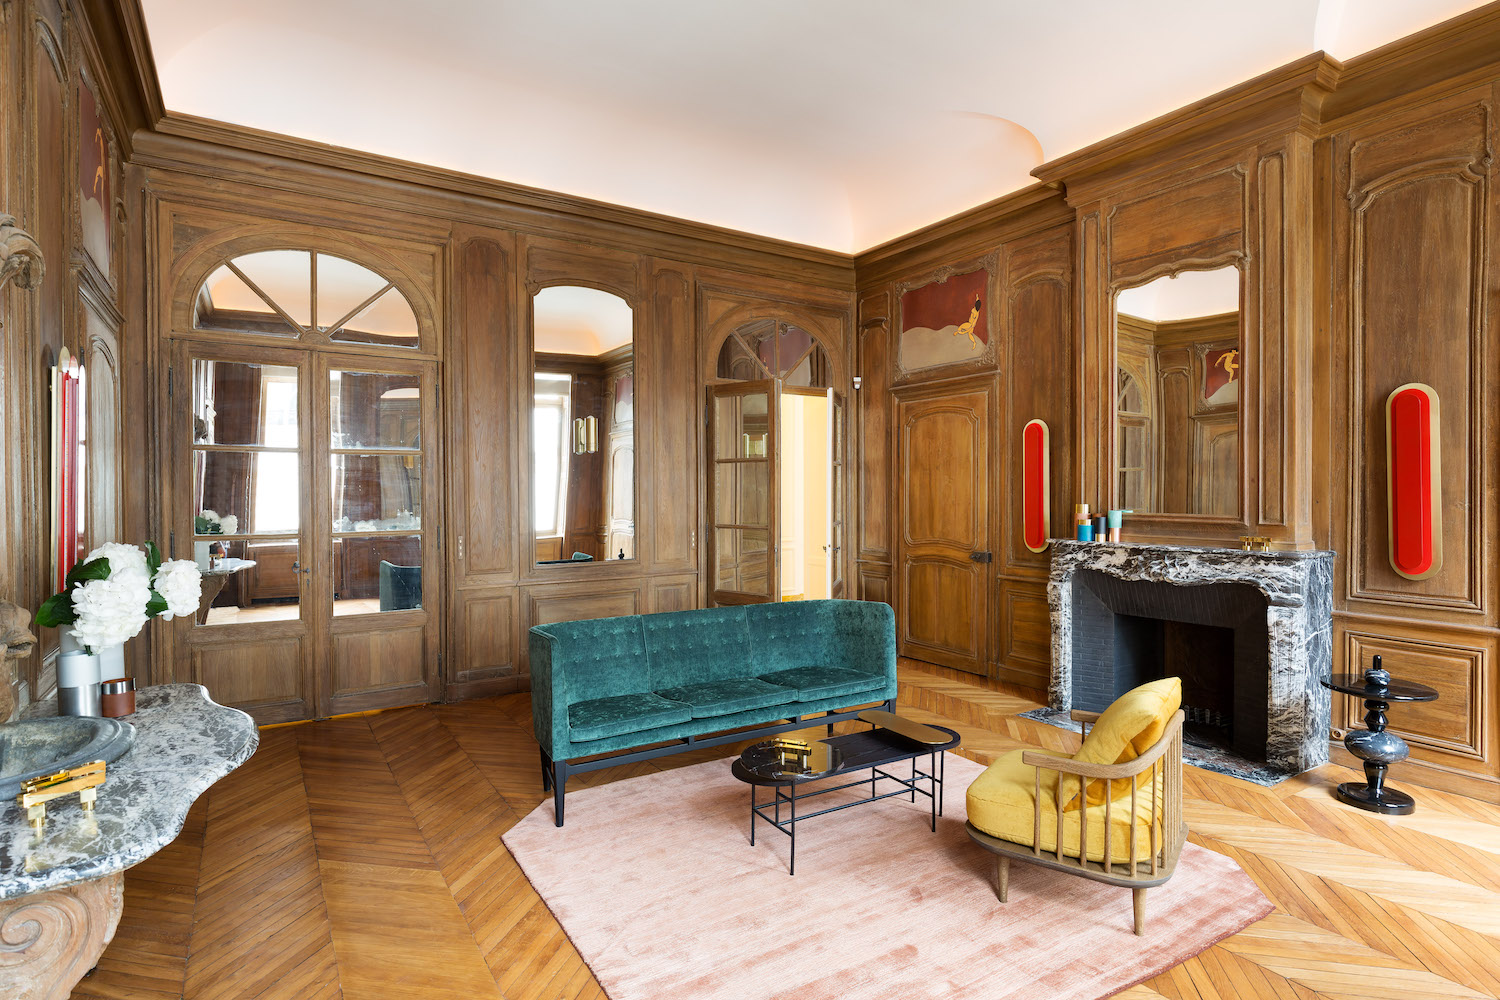 Coco Chanel's Apartment | Flodeau.com